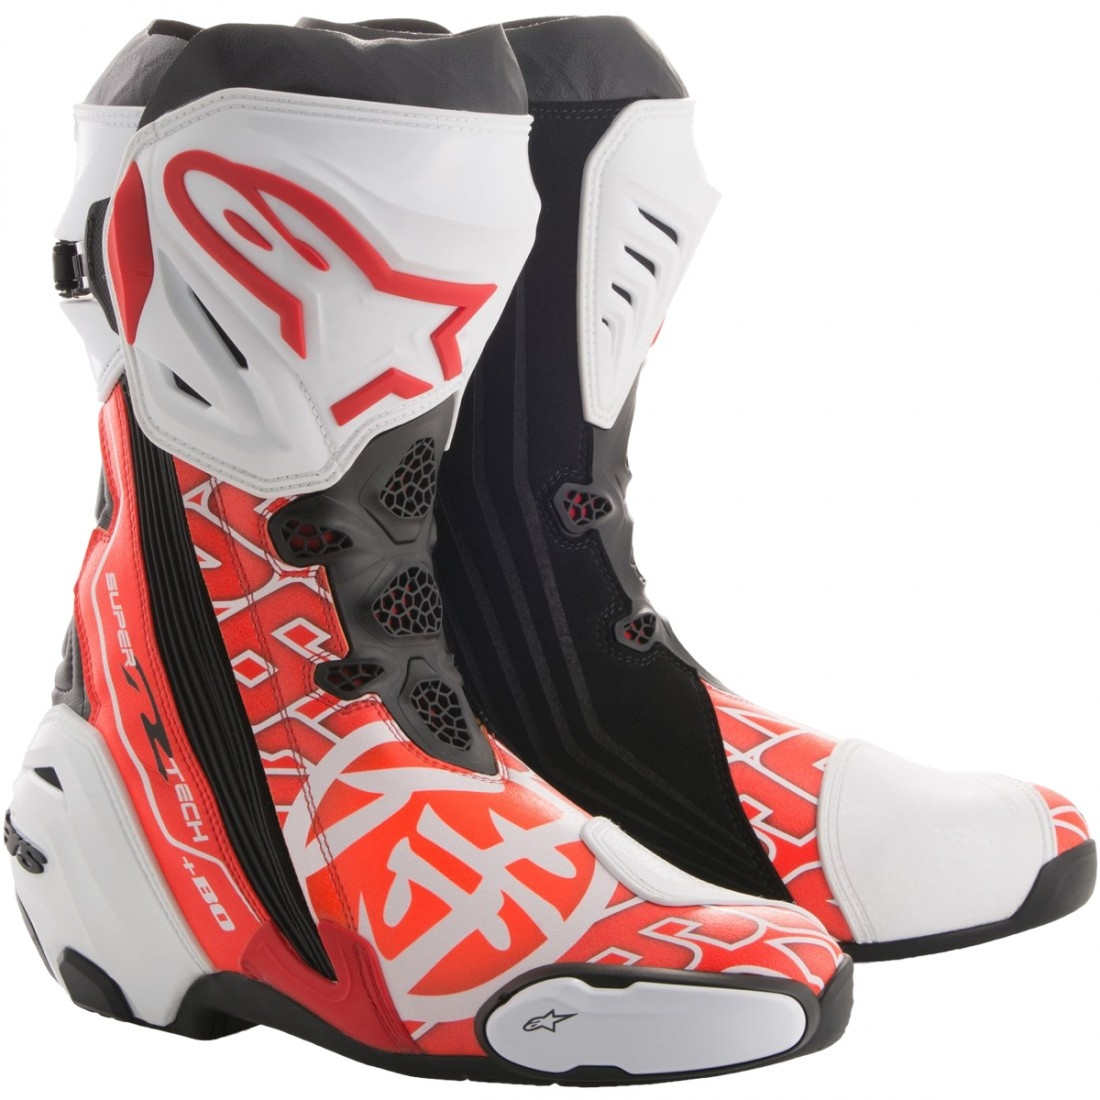 alpinestars supertech r samurai dani pedrosa limited edition boots motocard. Black Bedroom Furniture Sets. Home Design Ideas